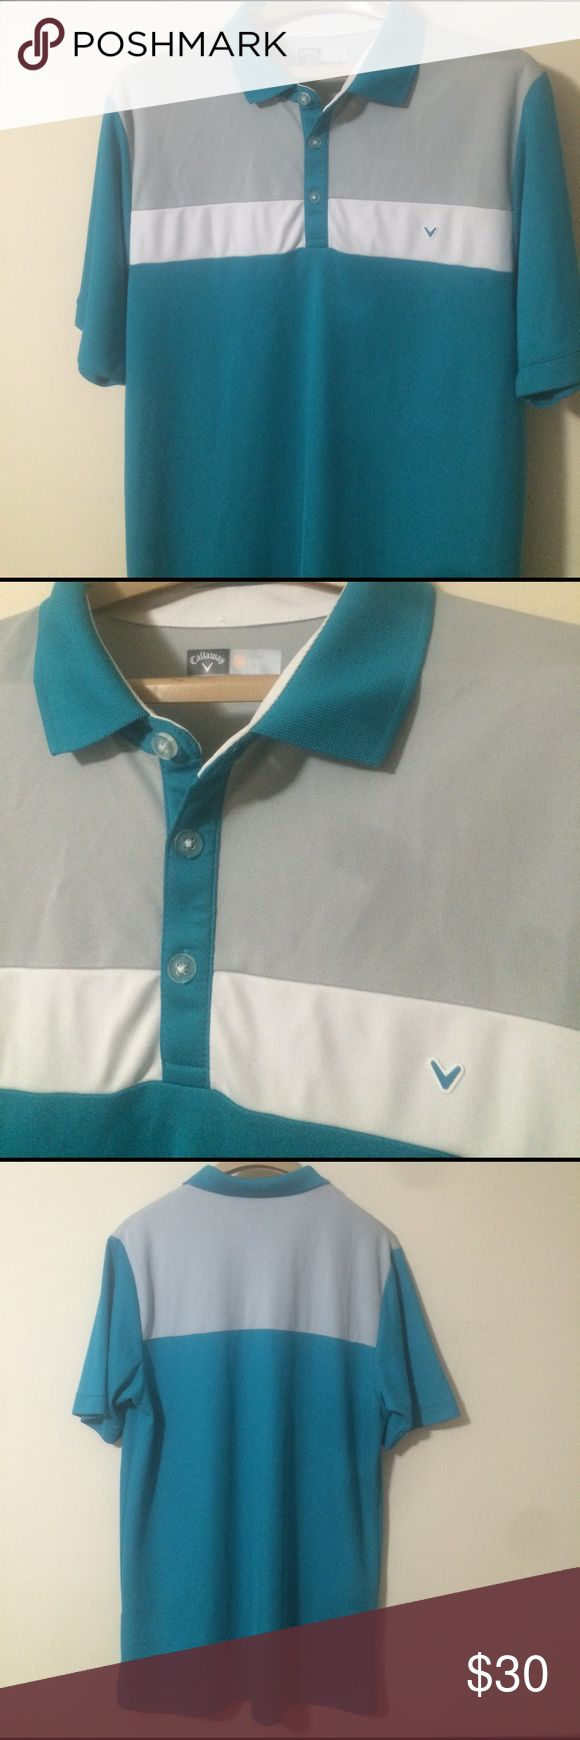 Callaway golf men's golf polo shirt. Very sharp! In excellent like new condition. Has teal blue base color with shades of white and gray. Opti-dry material. Size large. Callaway Shirts Polos